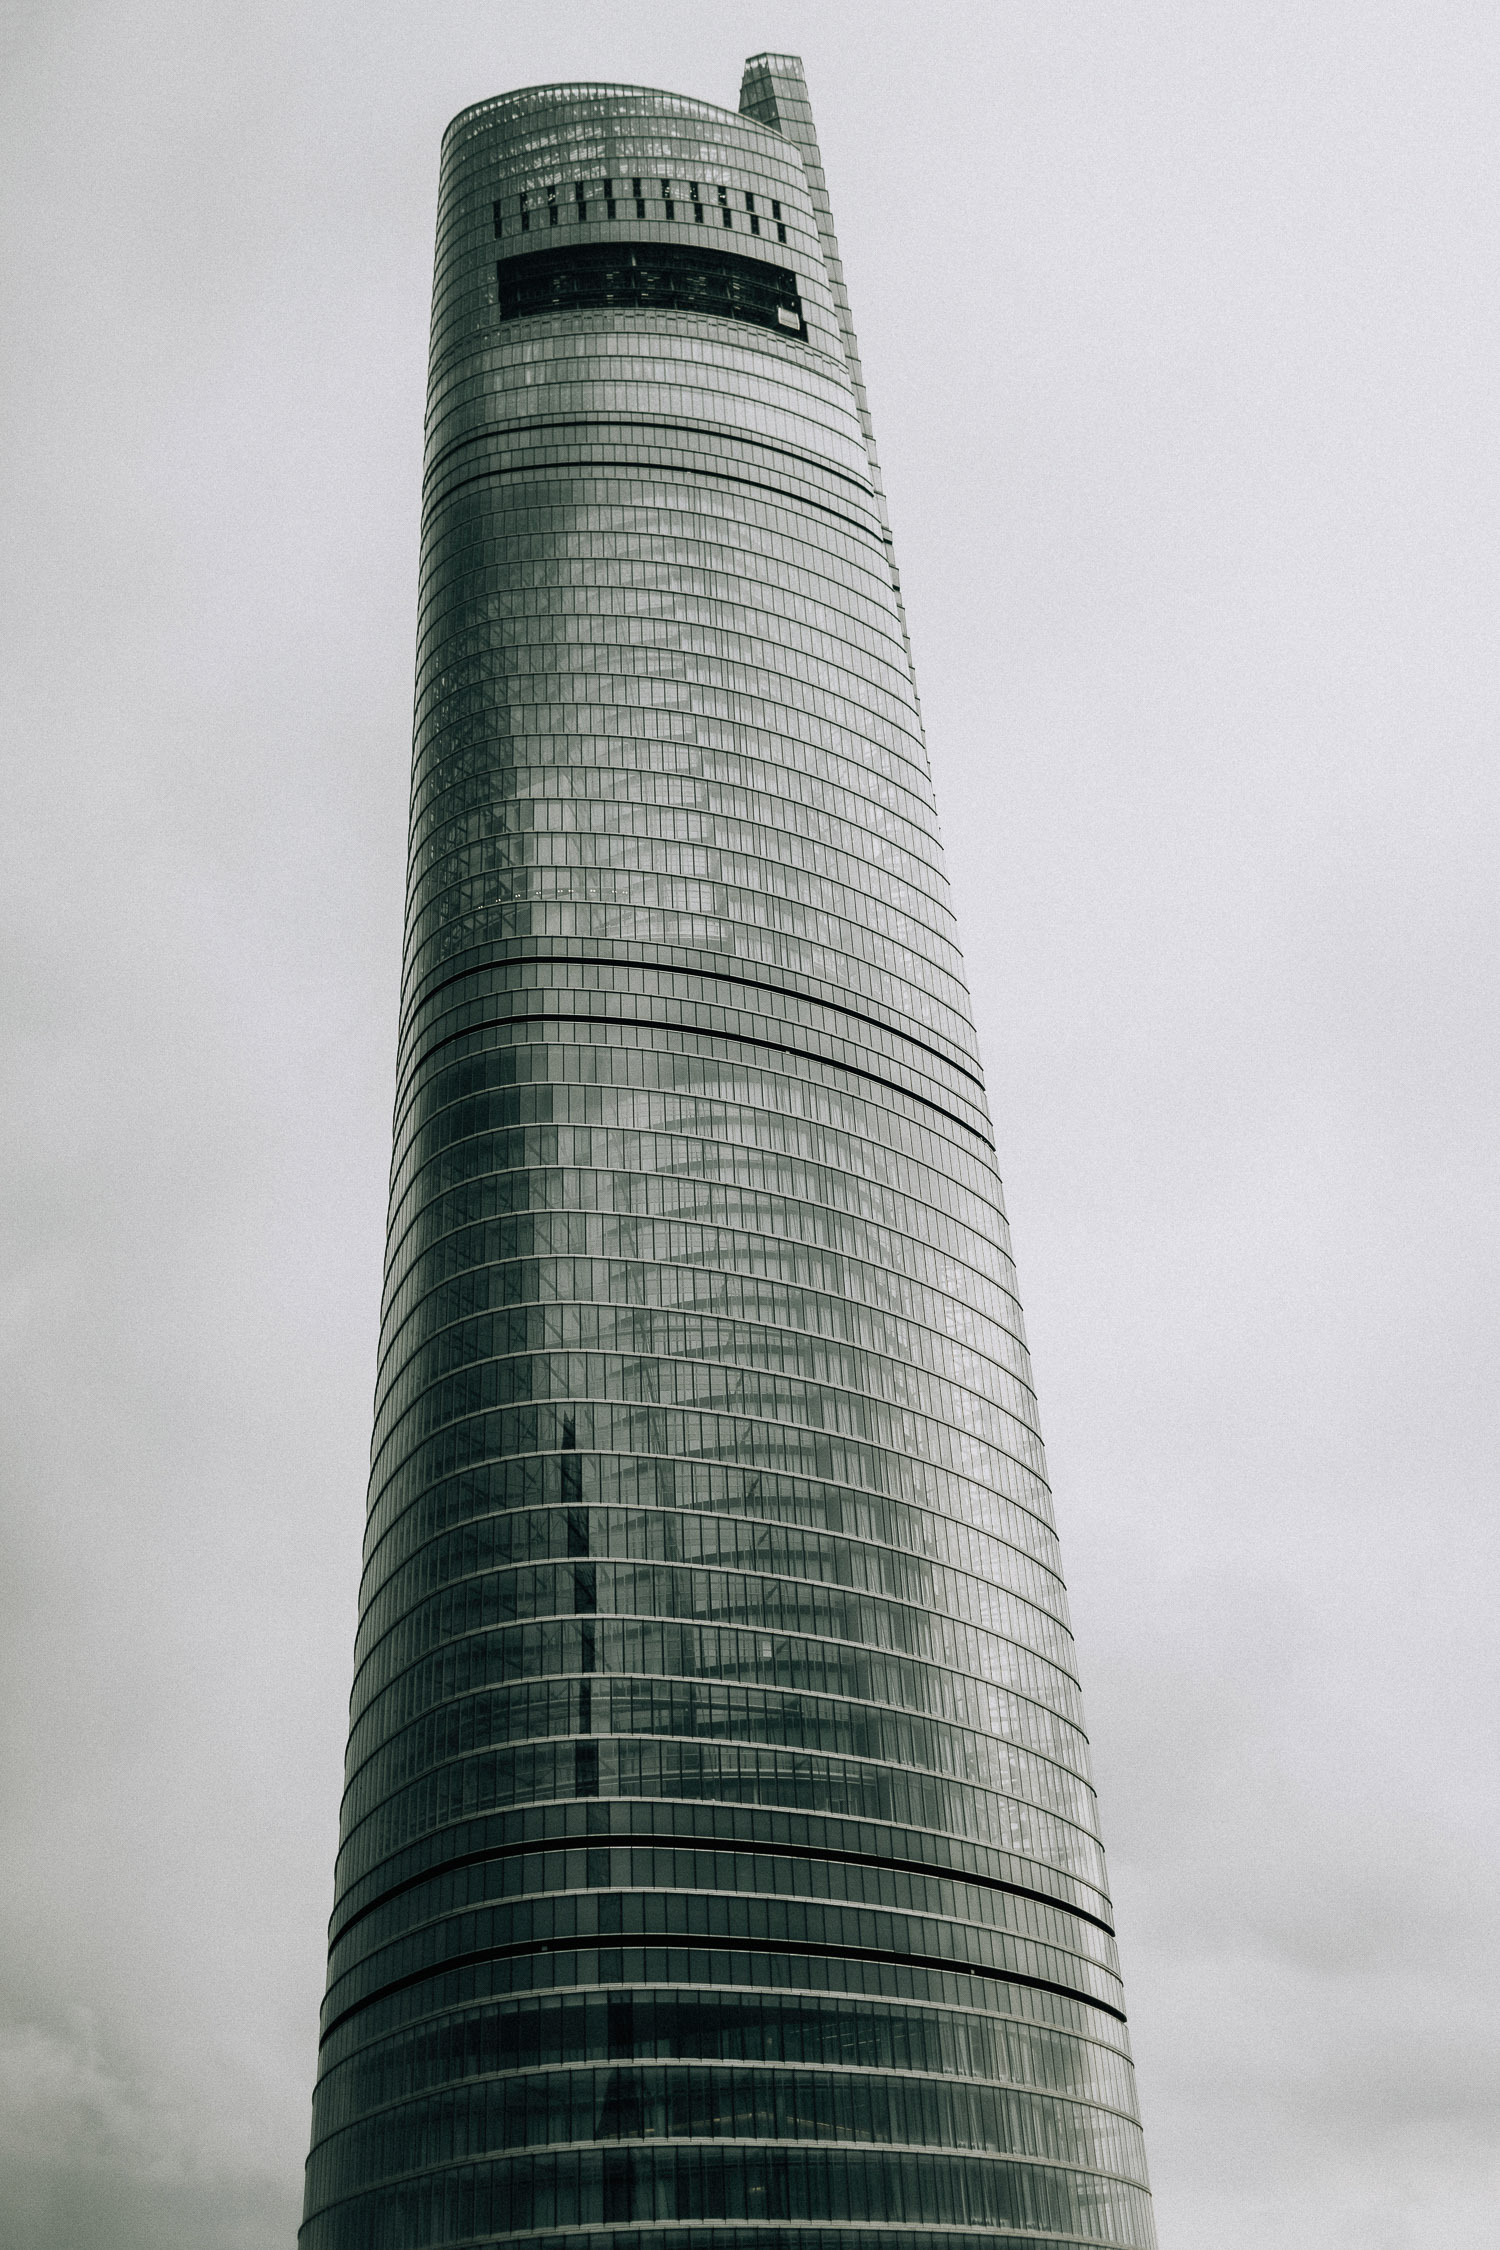 Image of tall building